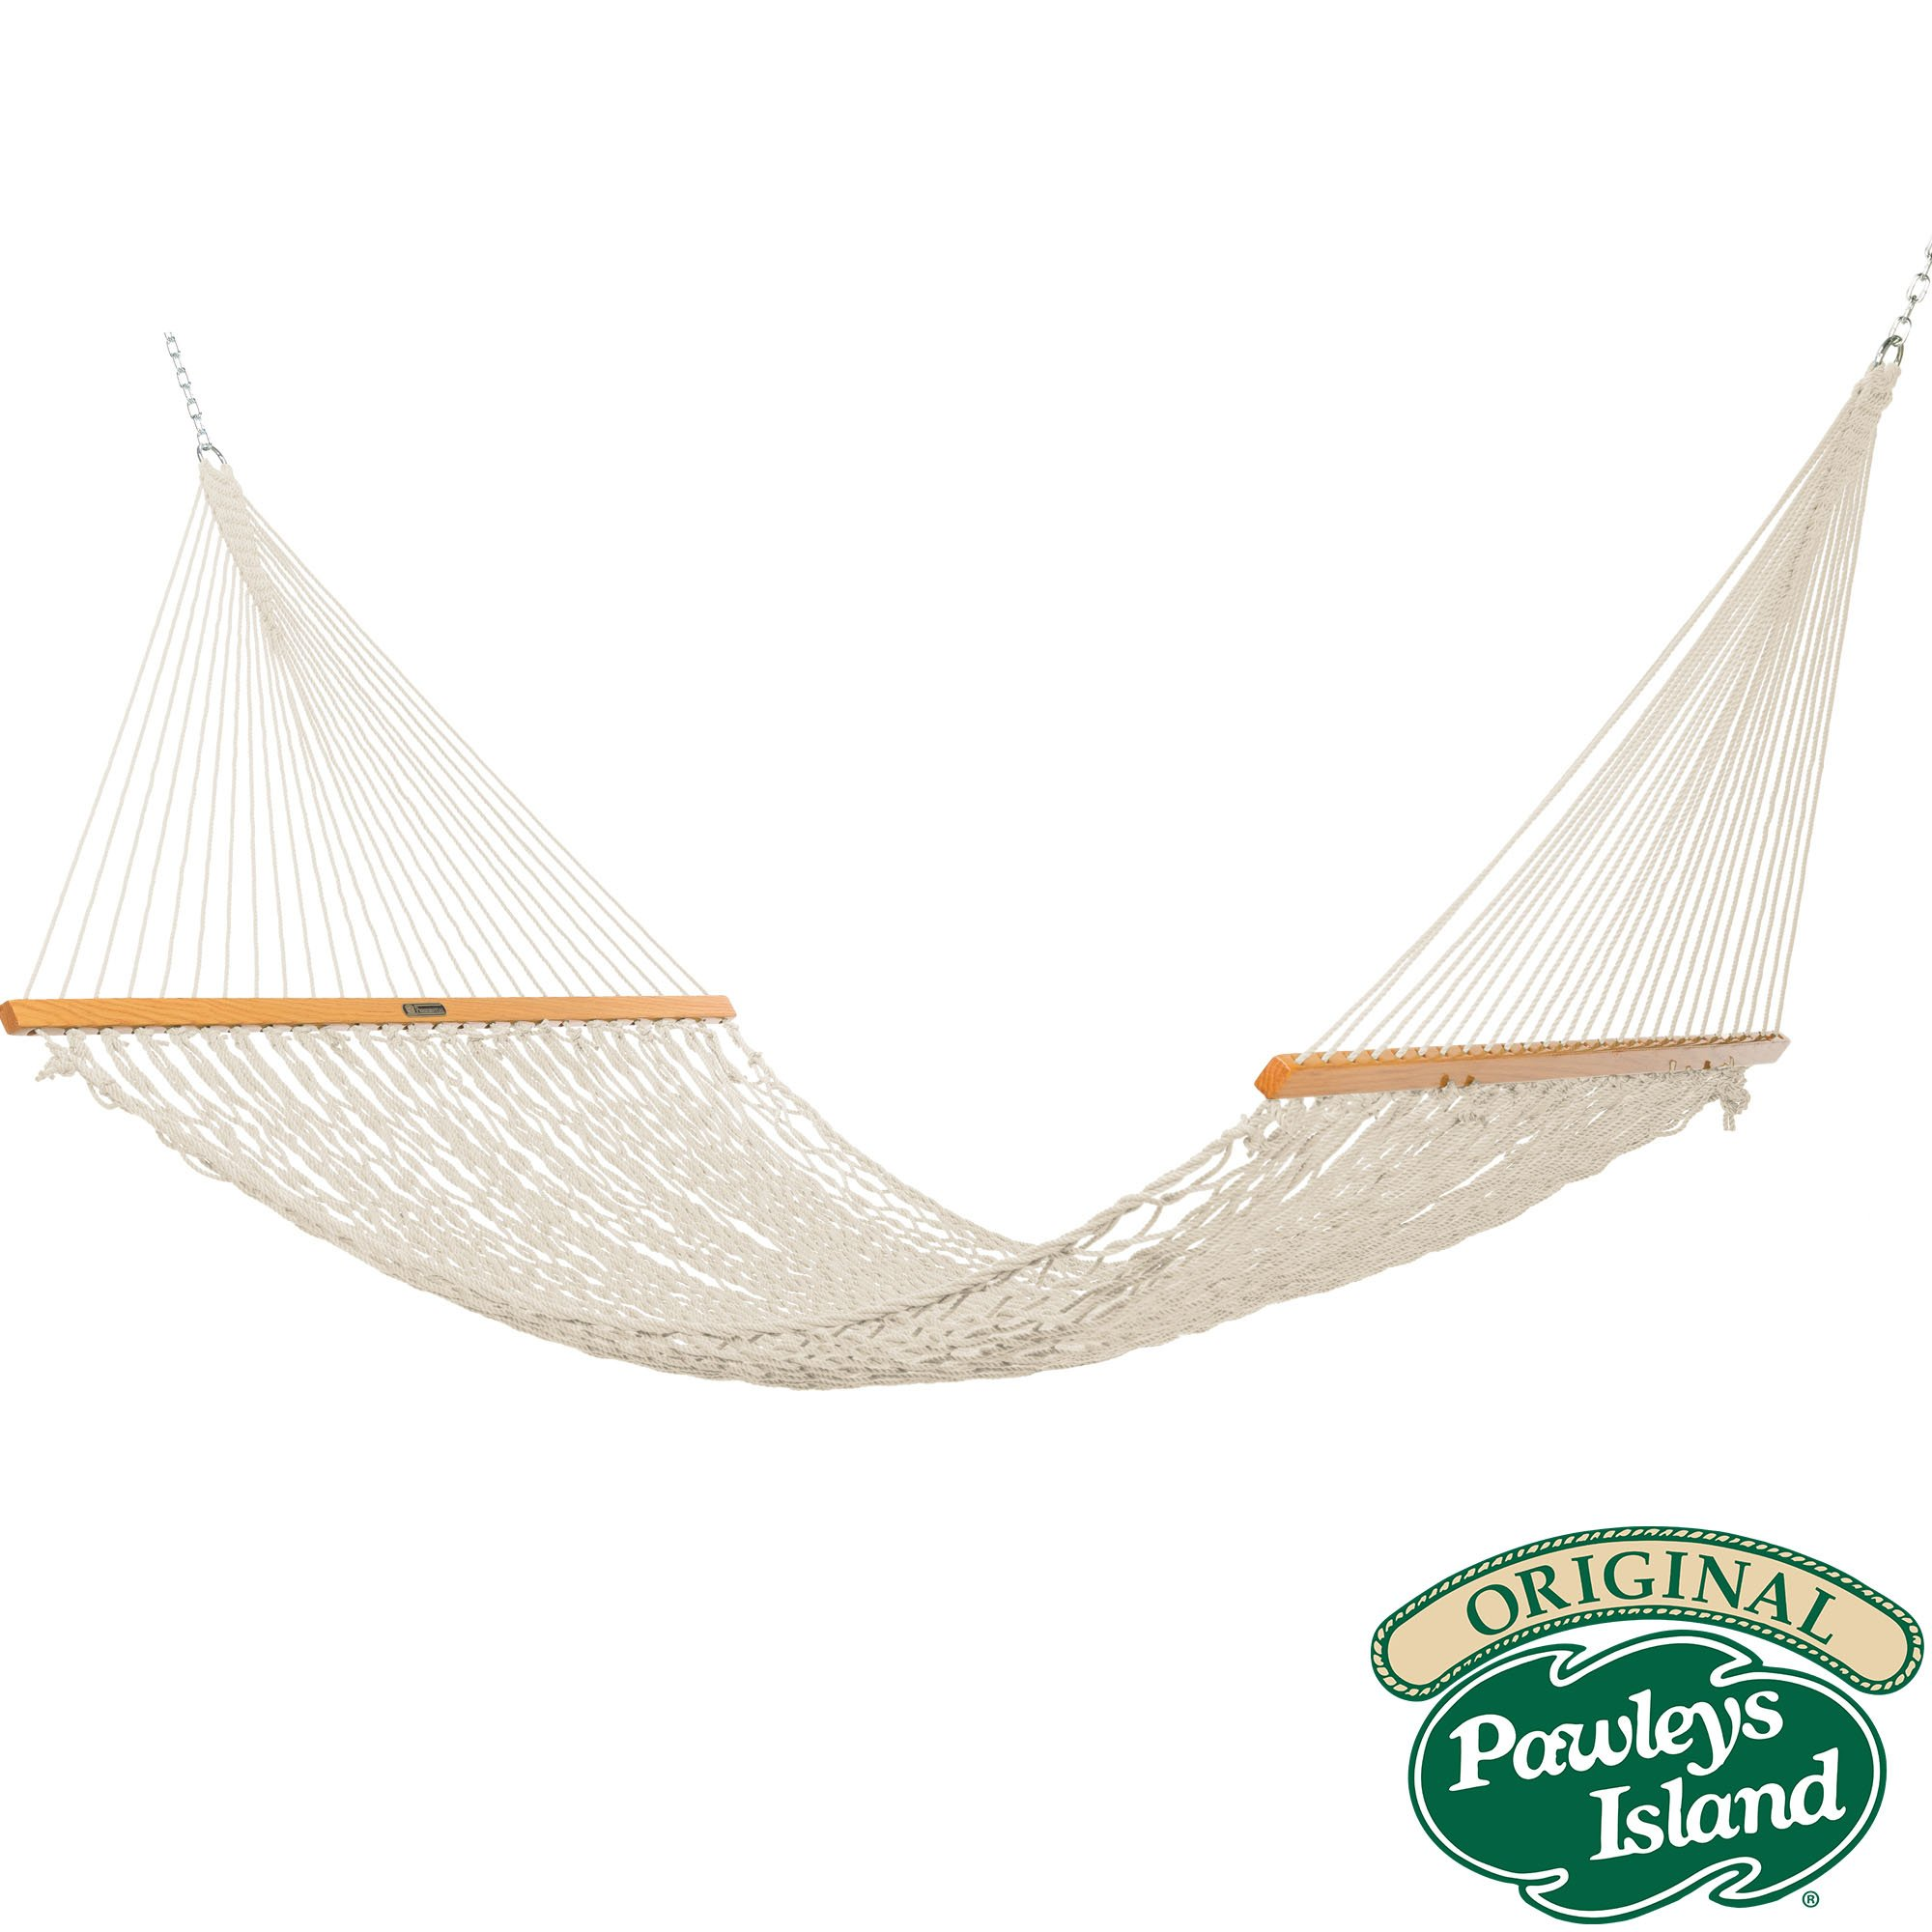 The Original Pawleys Island 15OC Cotton Rope Hammock Presidential Edition